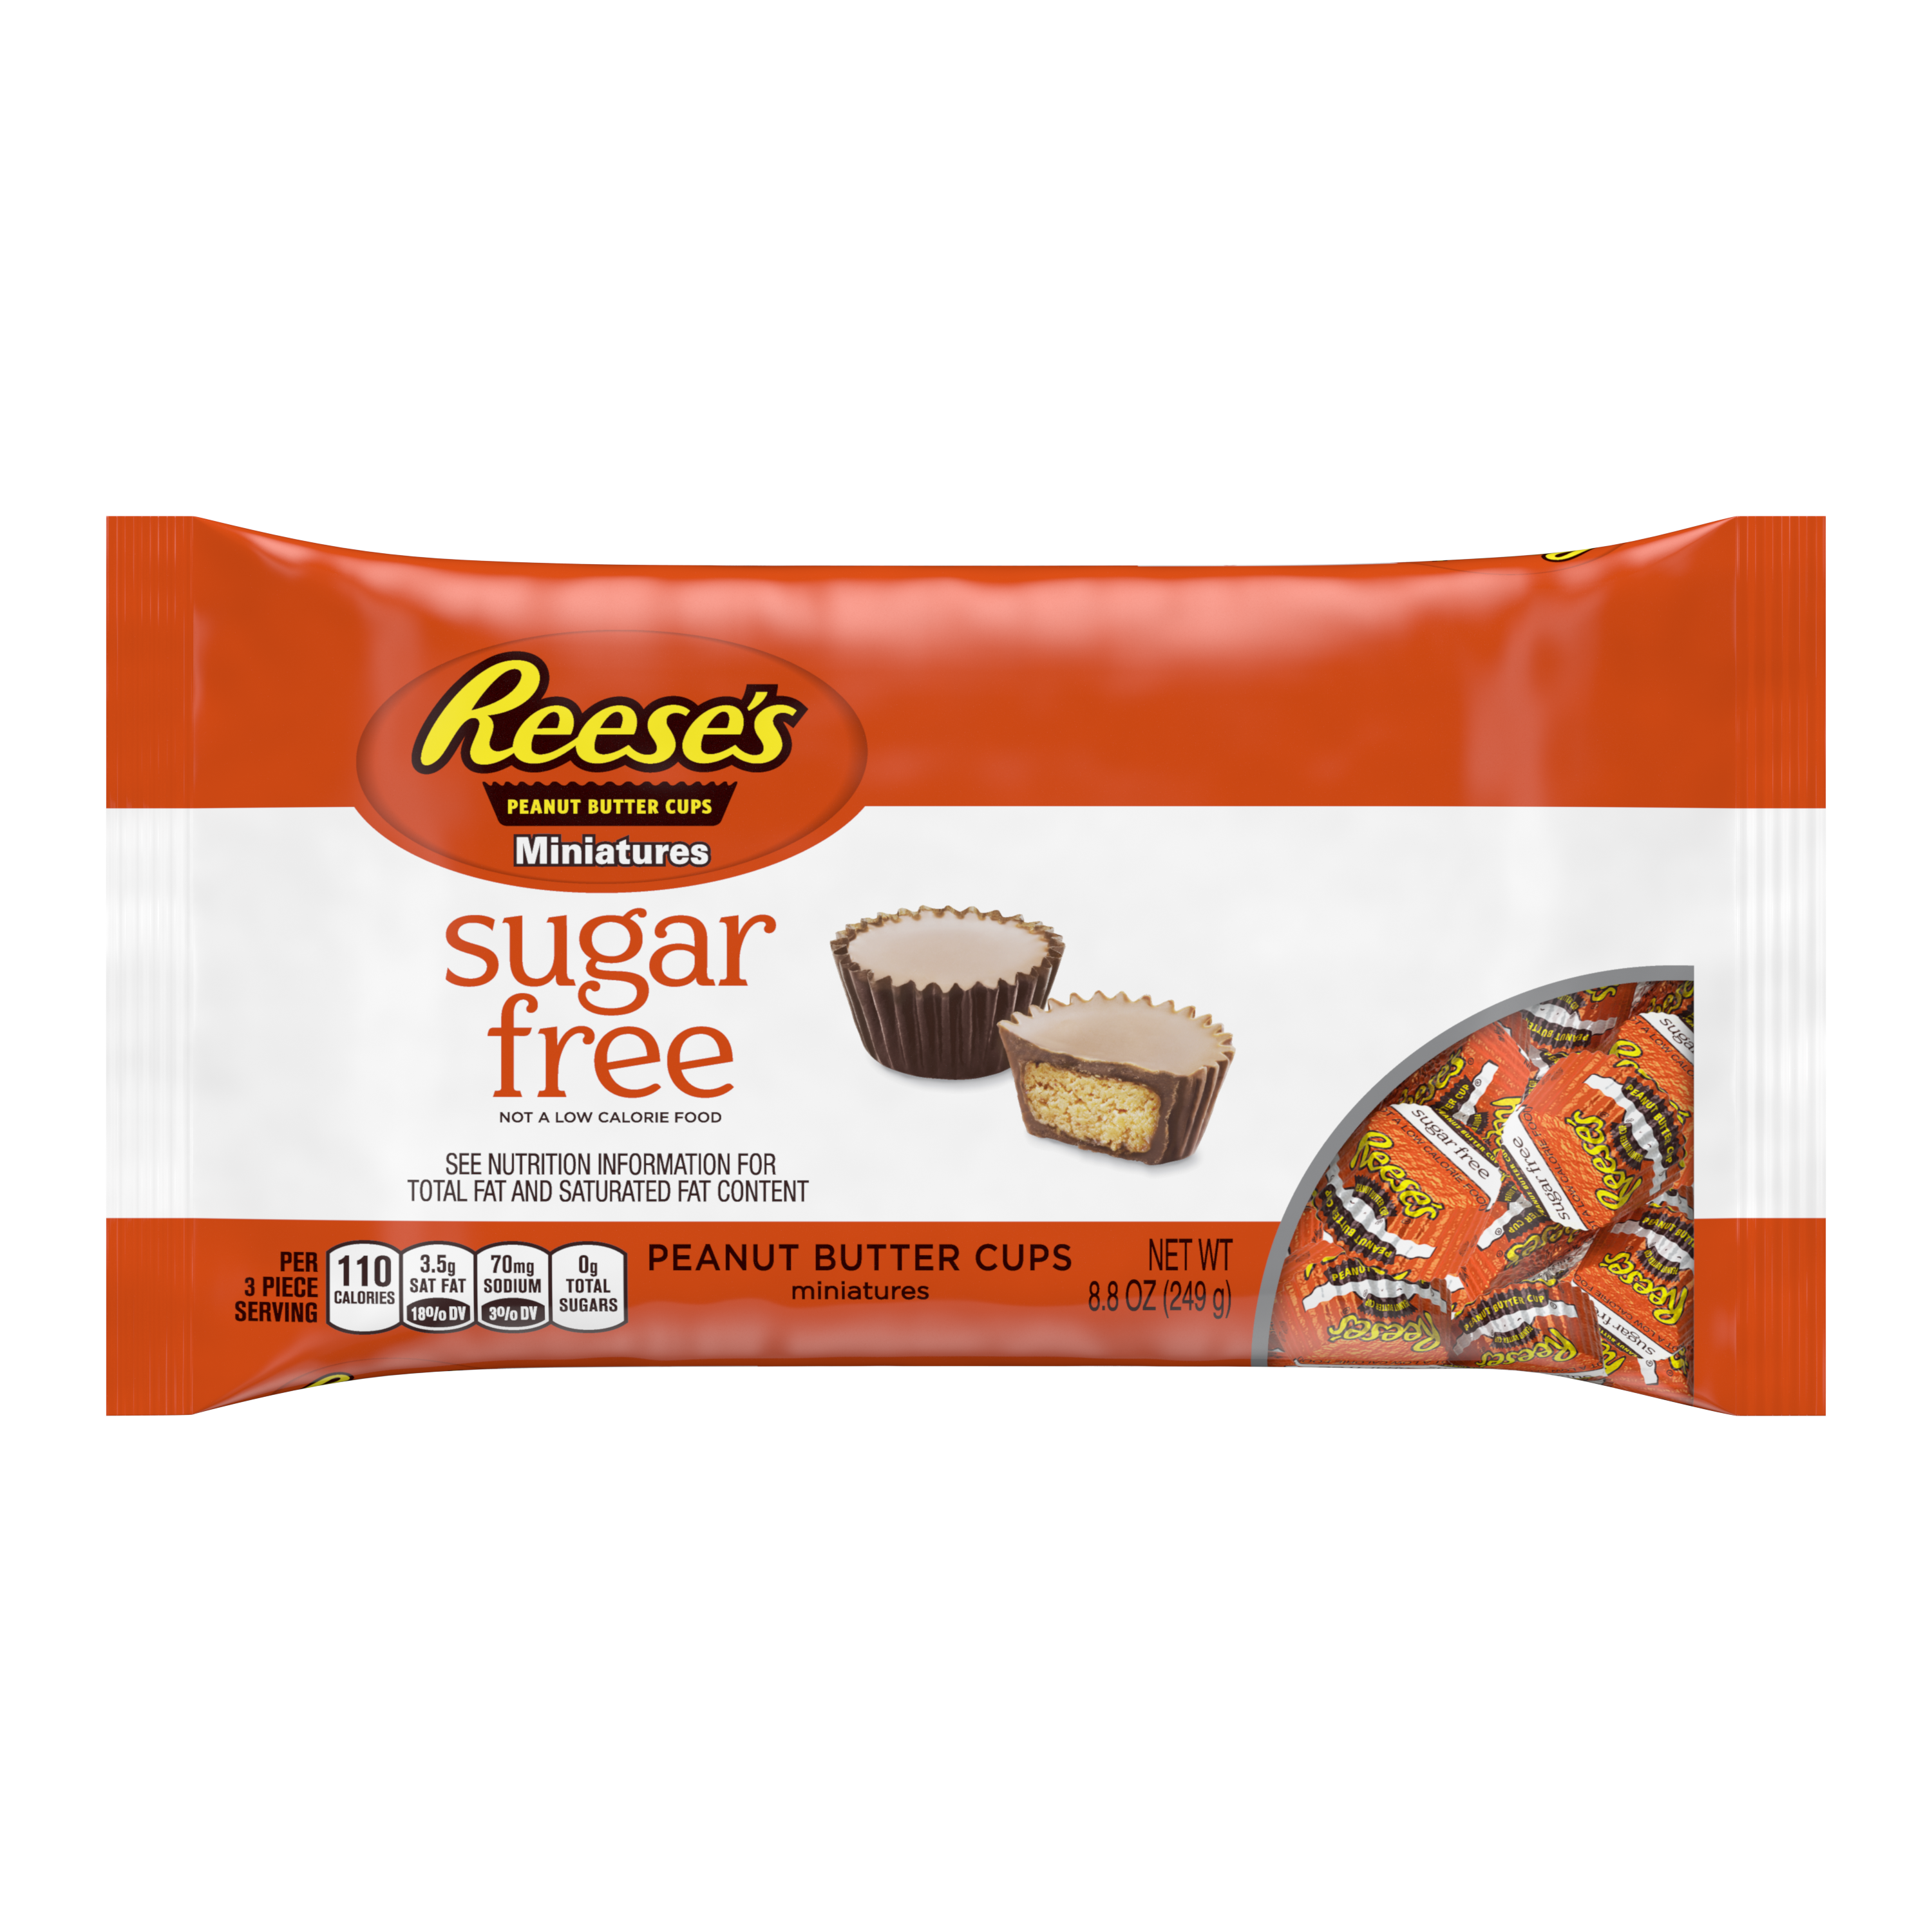 Reese's Peanut Butter Cups Miniatures Sugar Free - 8.8oz